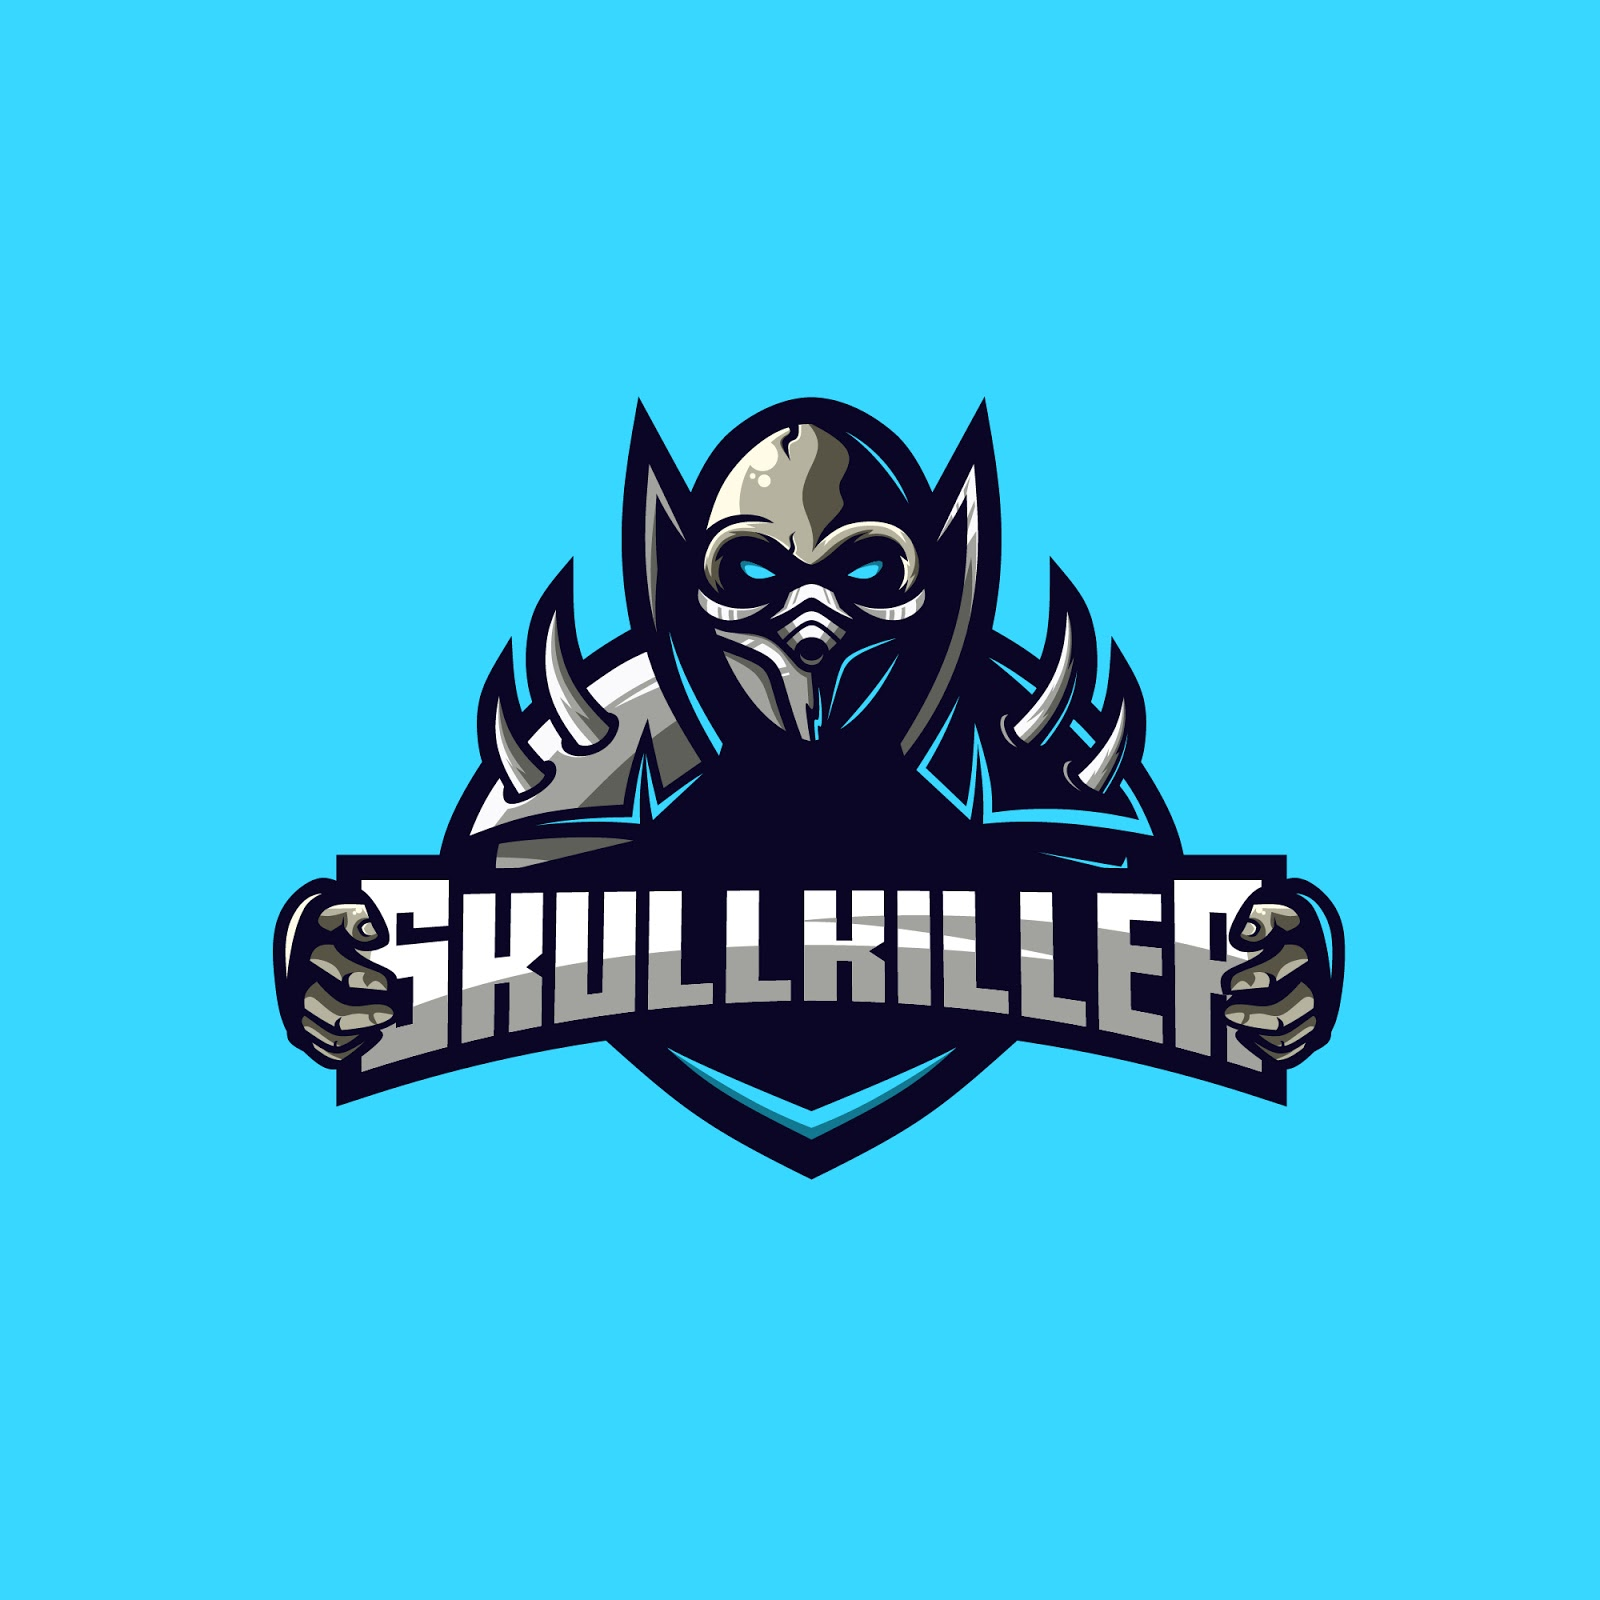 Skull Killer Premium Vector Free Download Vector CDR, AI, EPS and PNG Formats